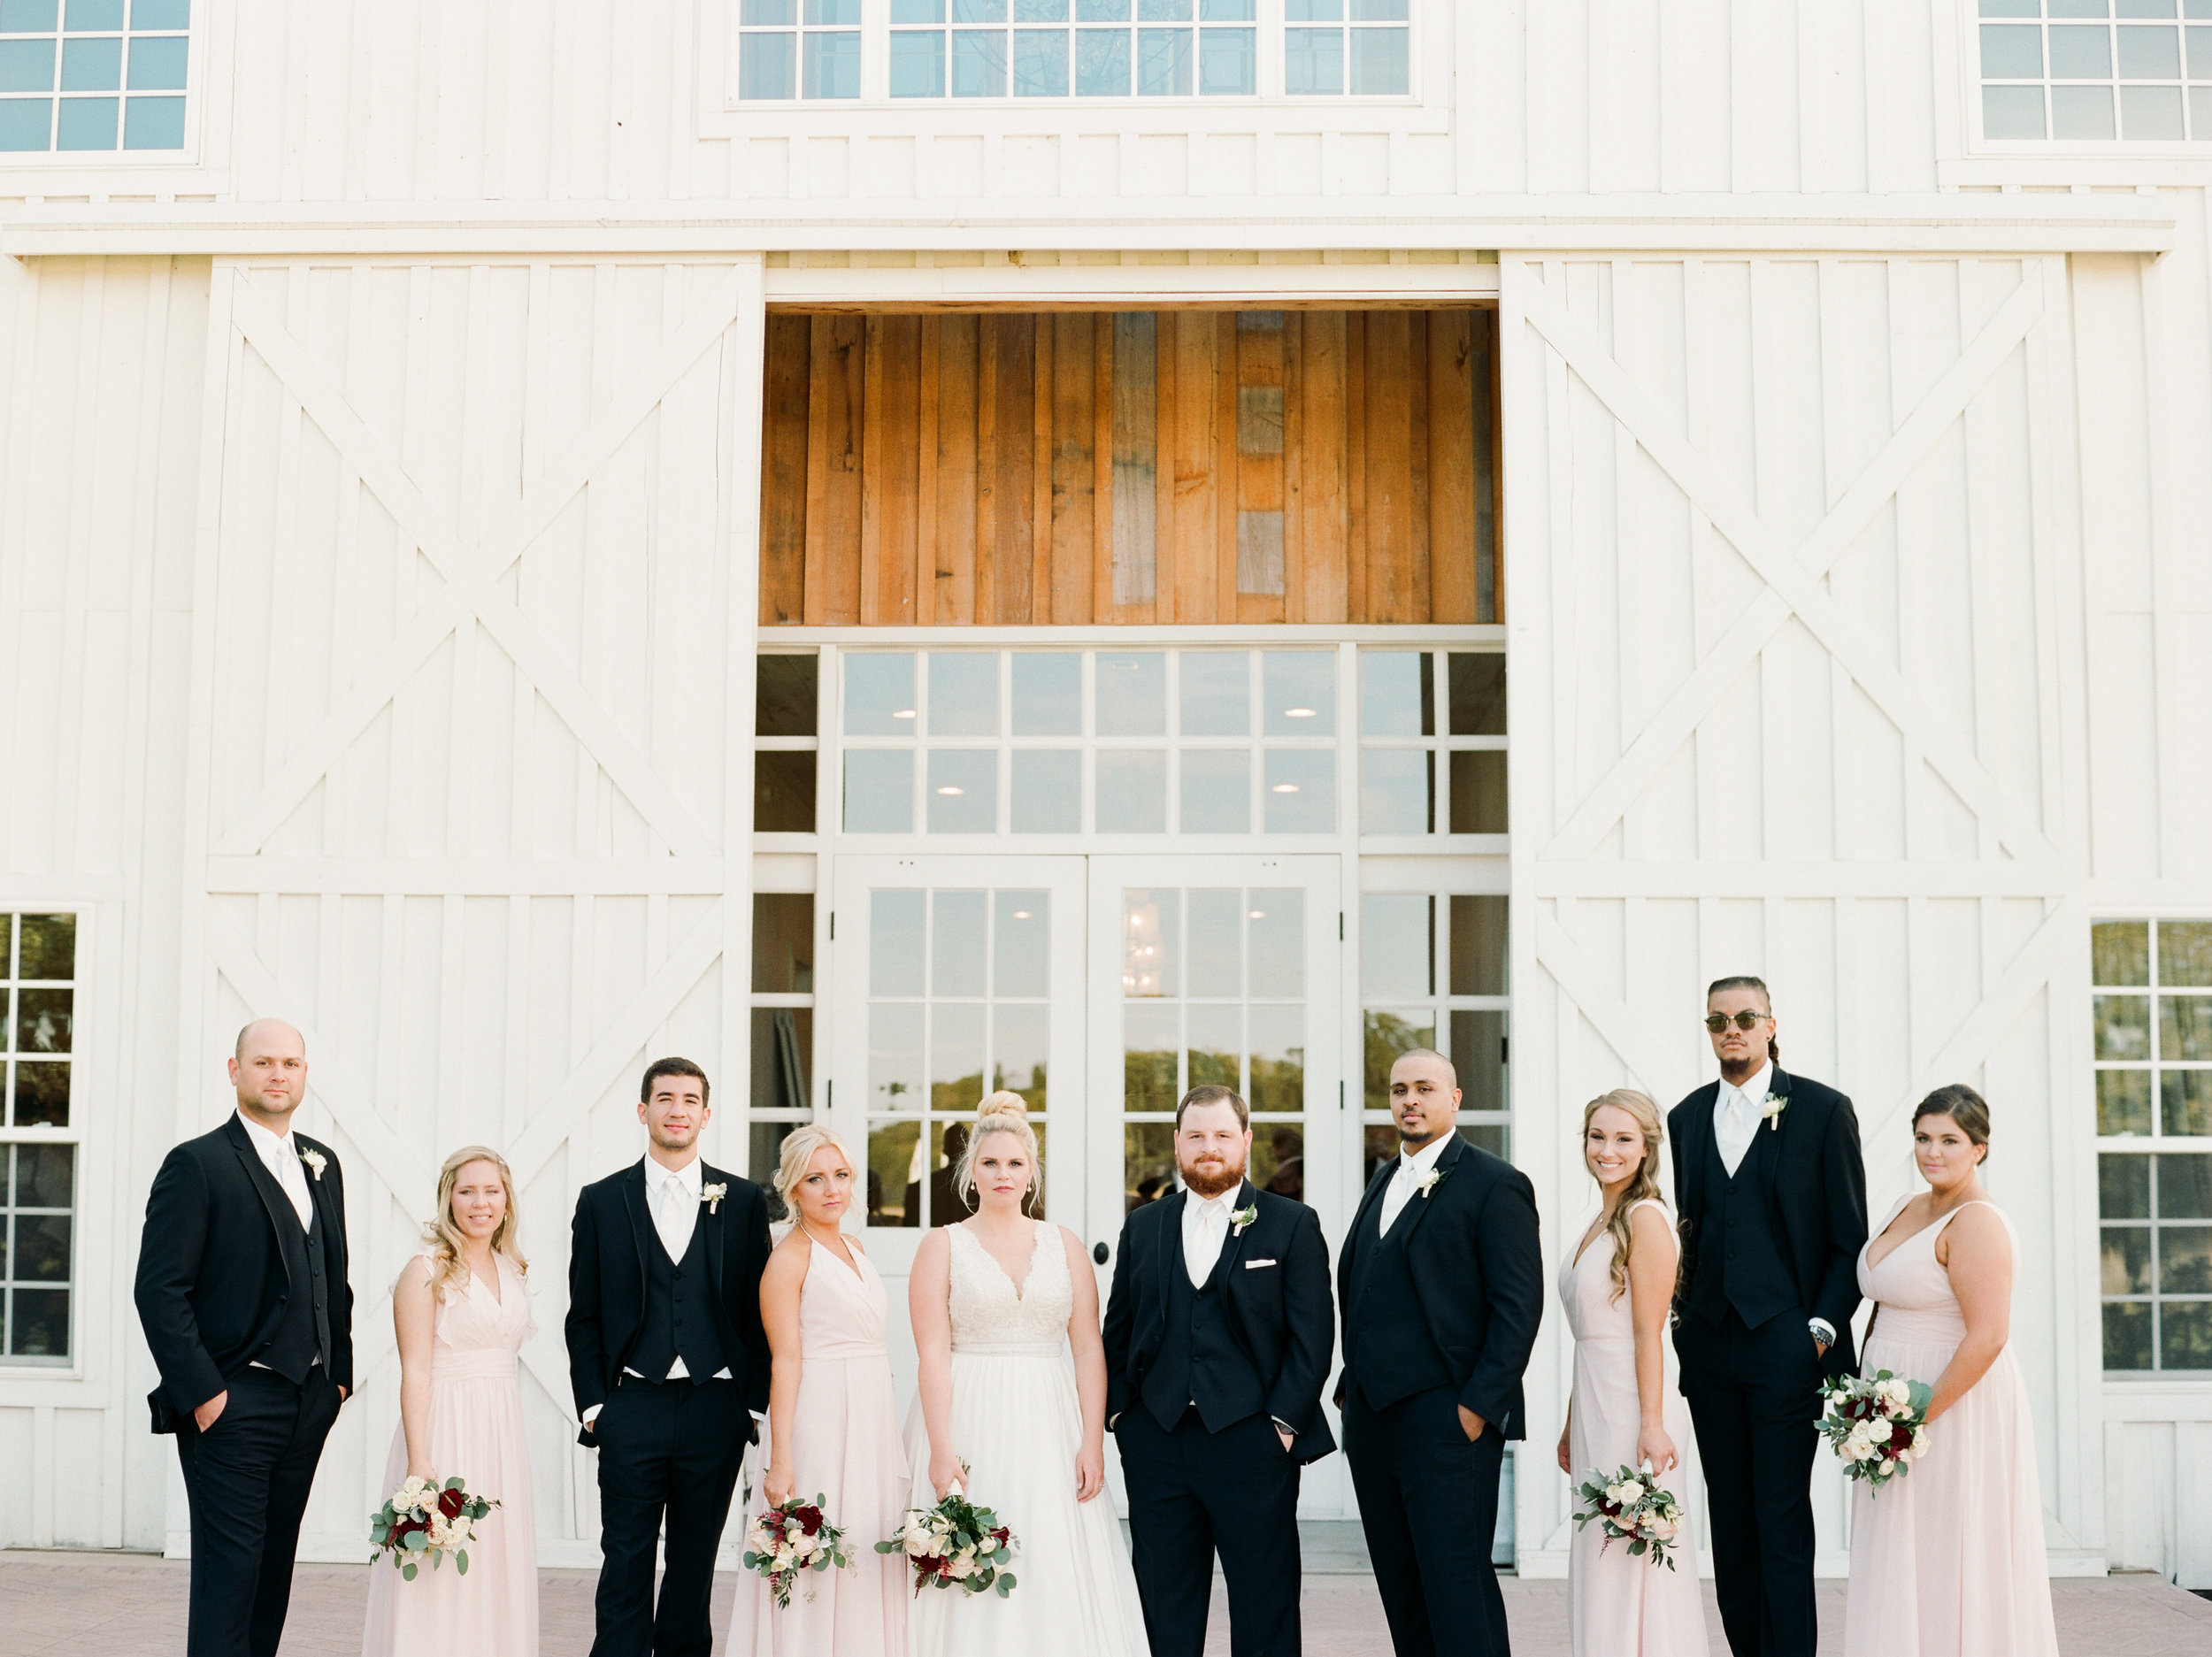 the-white-sparrow-barn-ar-photography-wedding-jennifer-andy-104.jpg